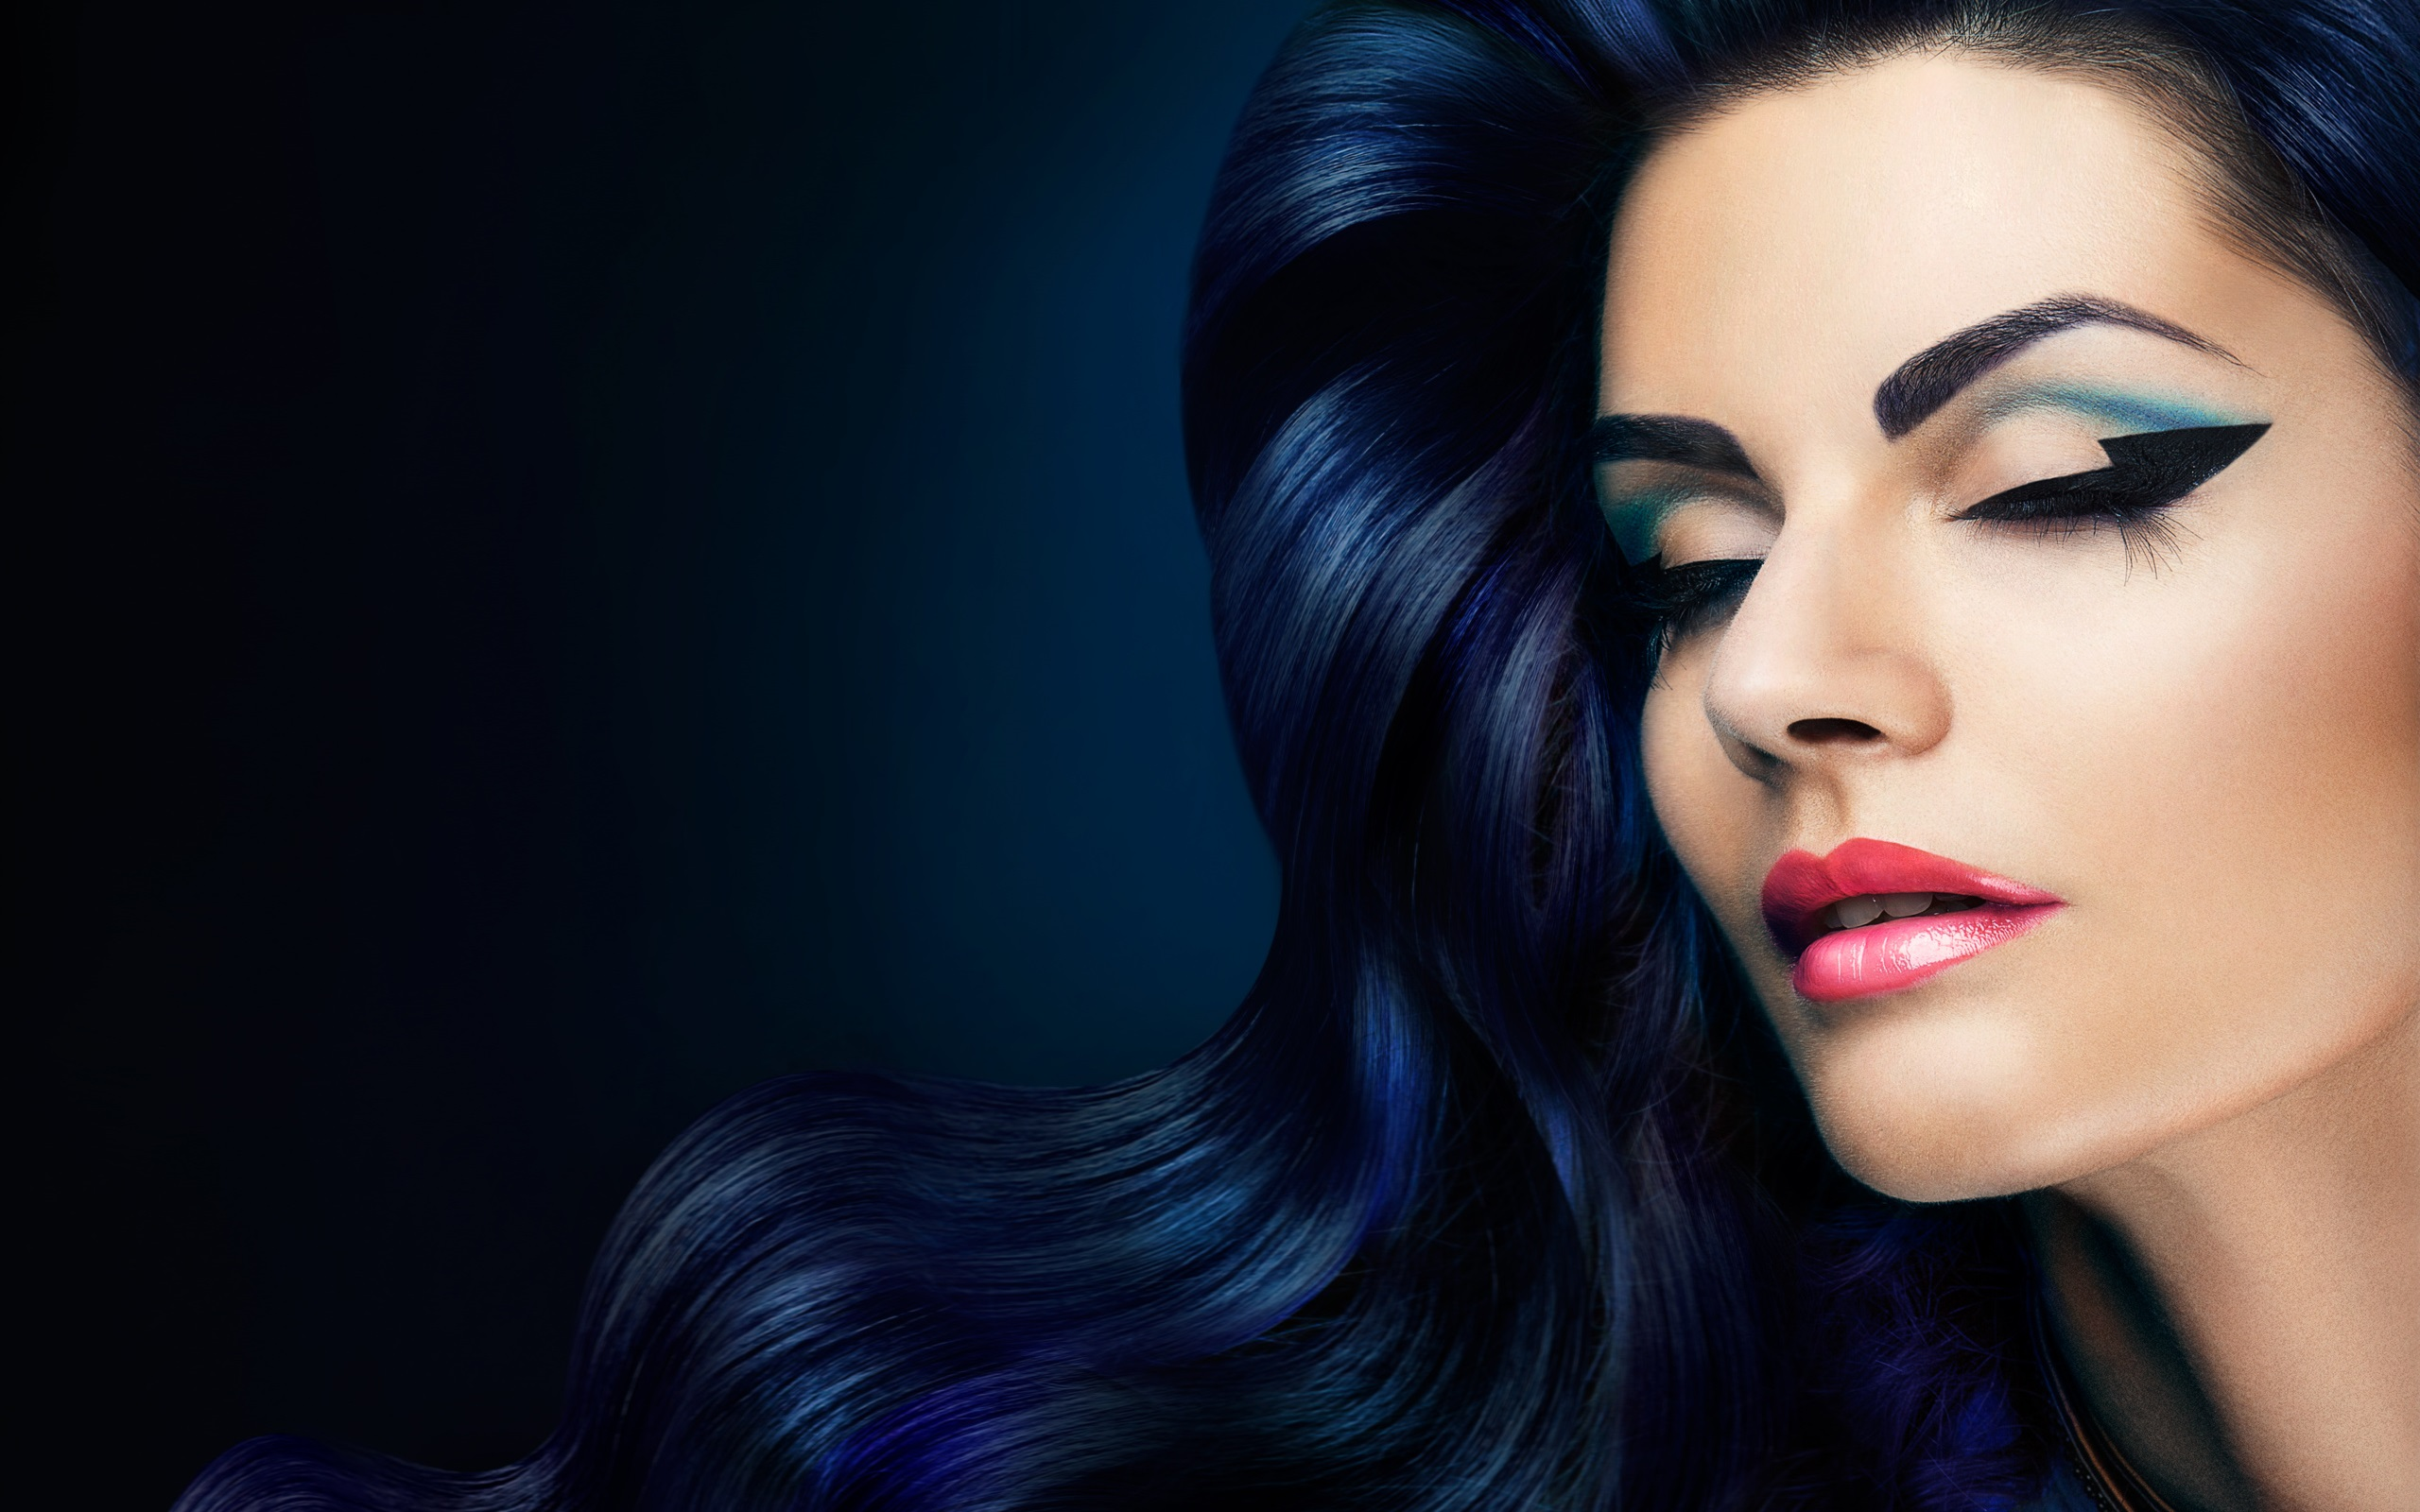 Wallpaper Fashion Girl Hair Style Wavy Makeup Eyes Closed Lashes 2560x1600 Hd Picture Image